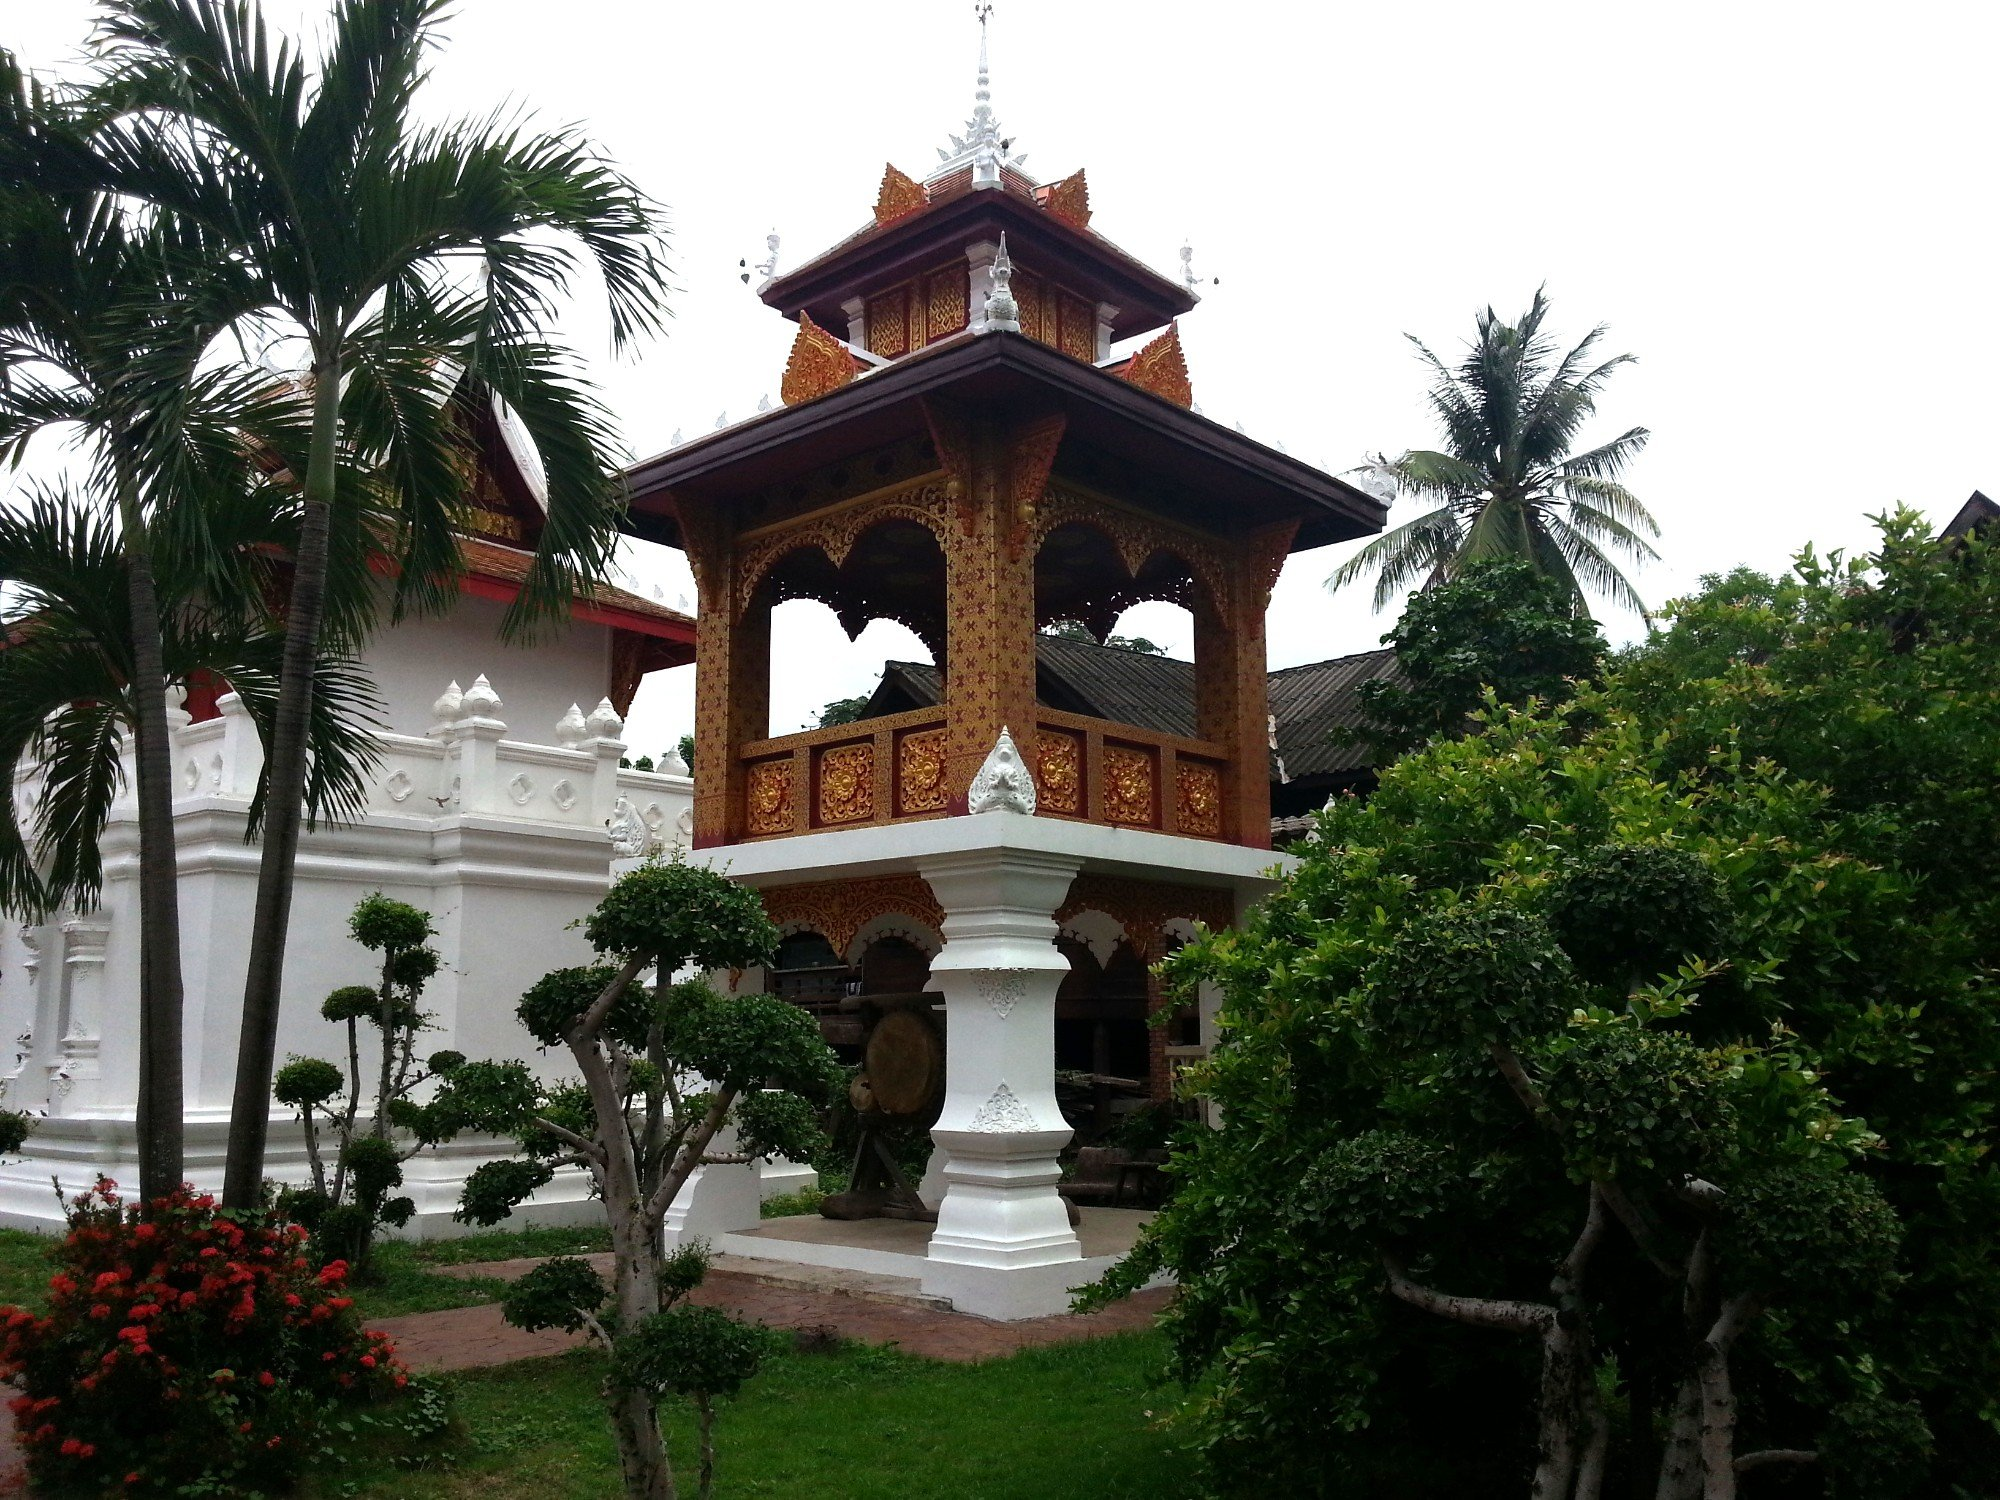 Drum tower at Wat Pratu Pong